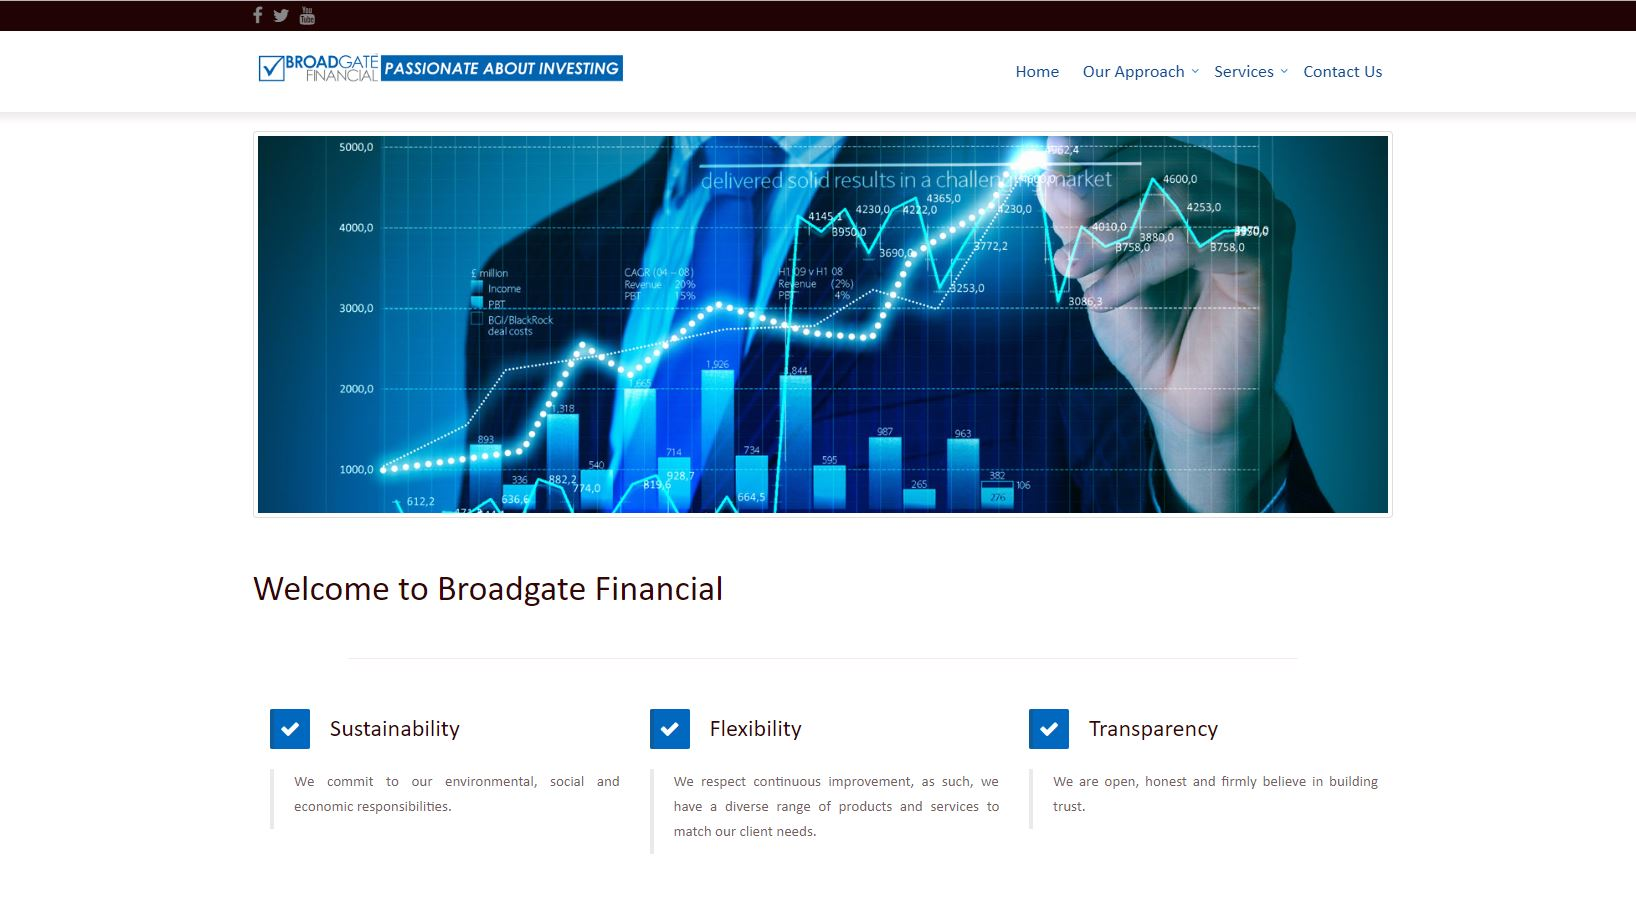 Broadgatefinancial.com